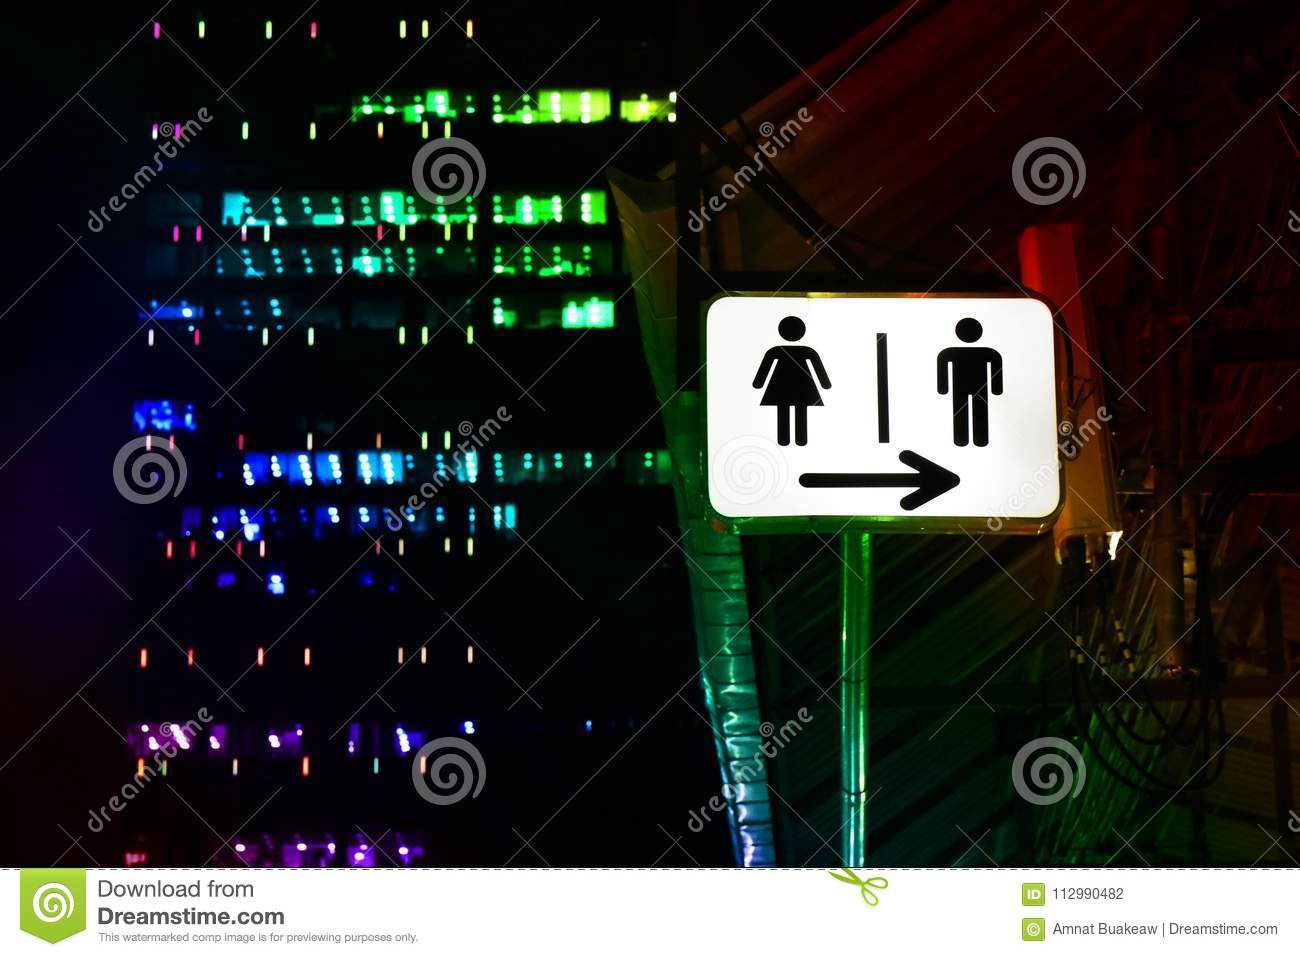 Signs night bathroom, toilet sign male - female, signs, lights, signs, signs for toilets in pubs - public house, night parties and